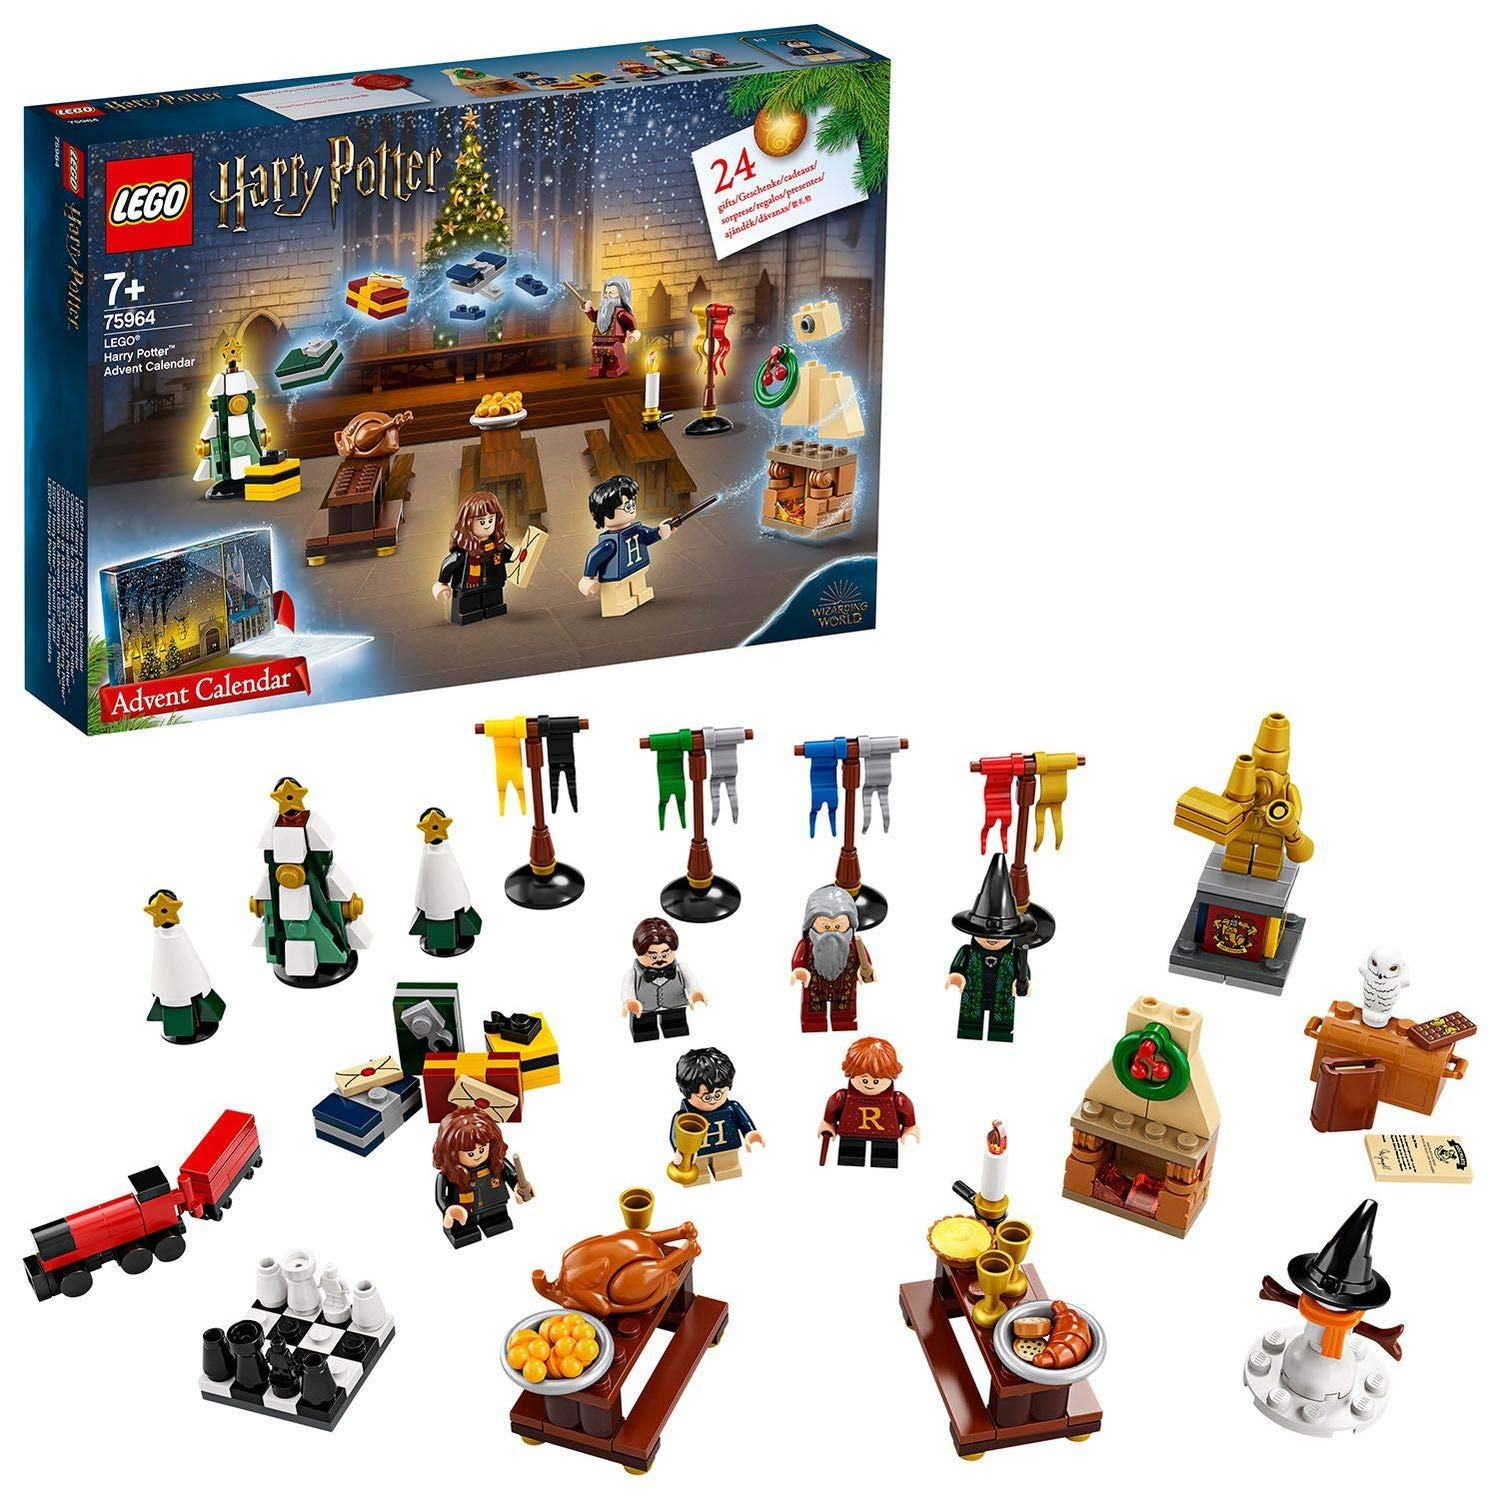 LEGO And Christmas 'Click' Together With Harry Potter Advent Calendar